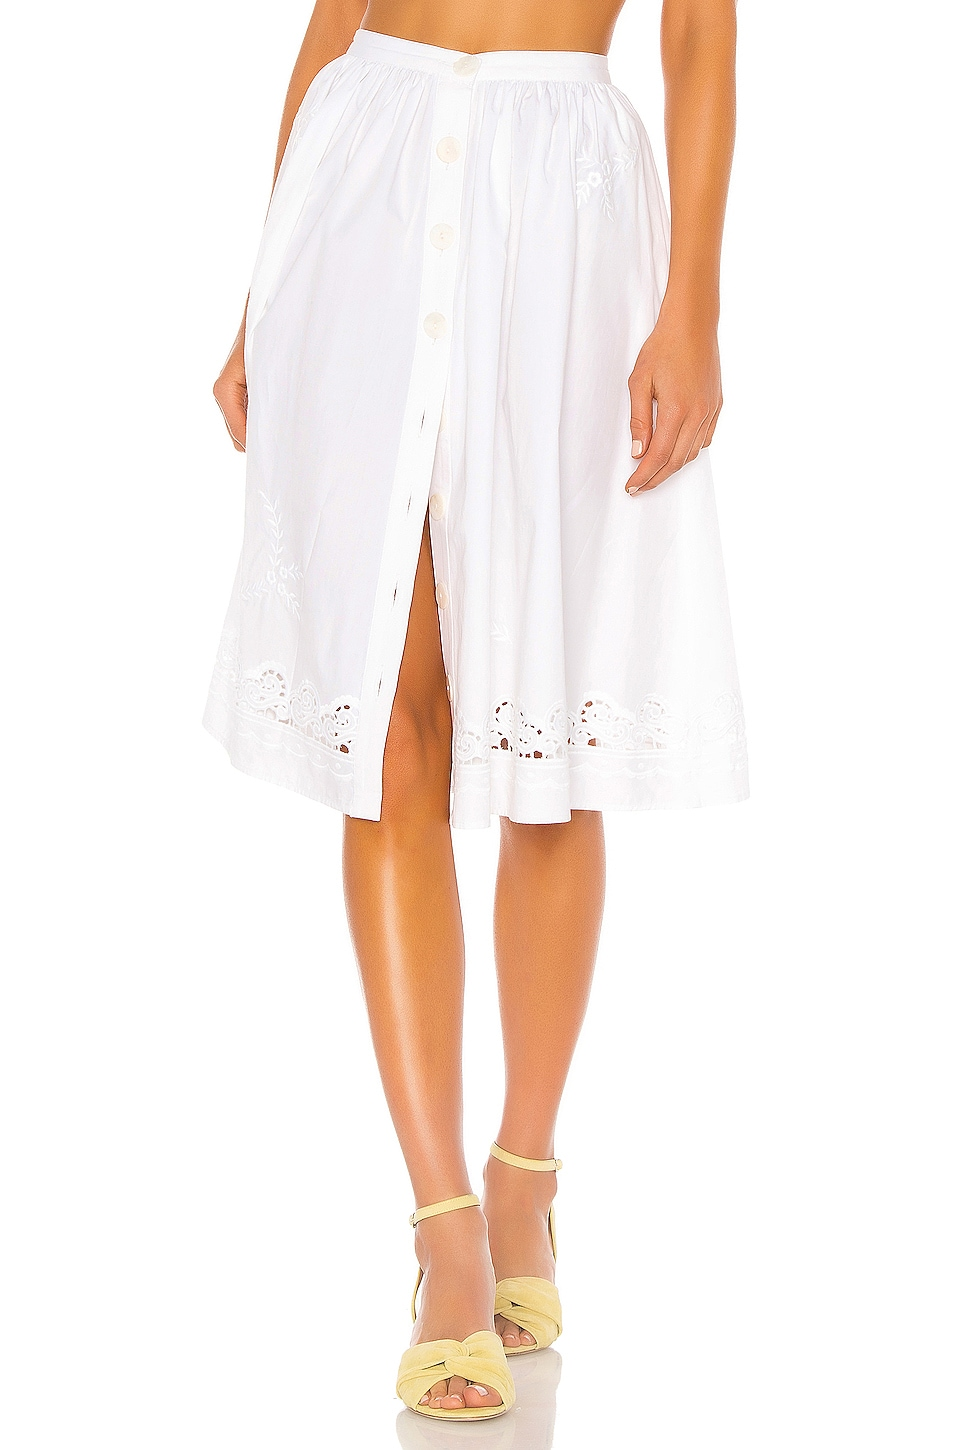 LPA Orsina Skirt in White